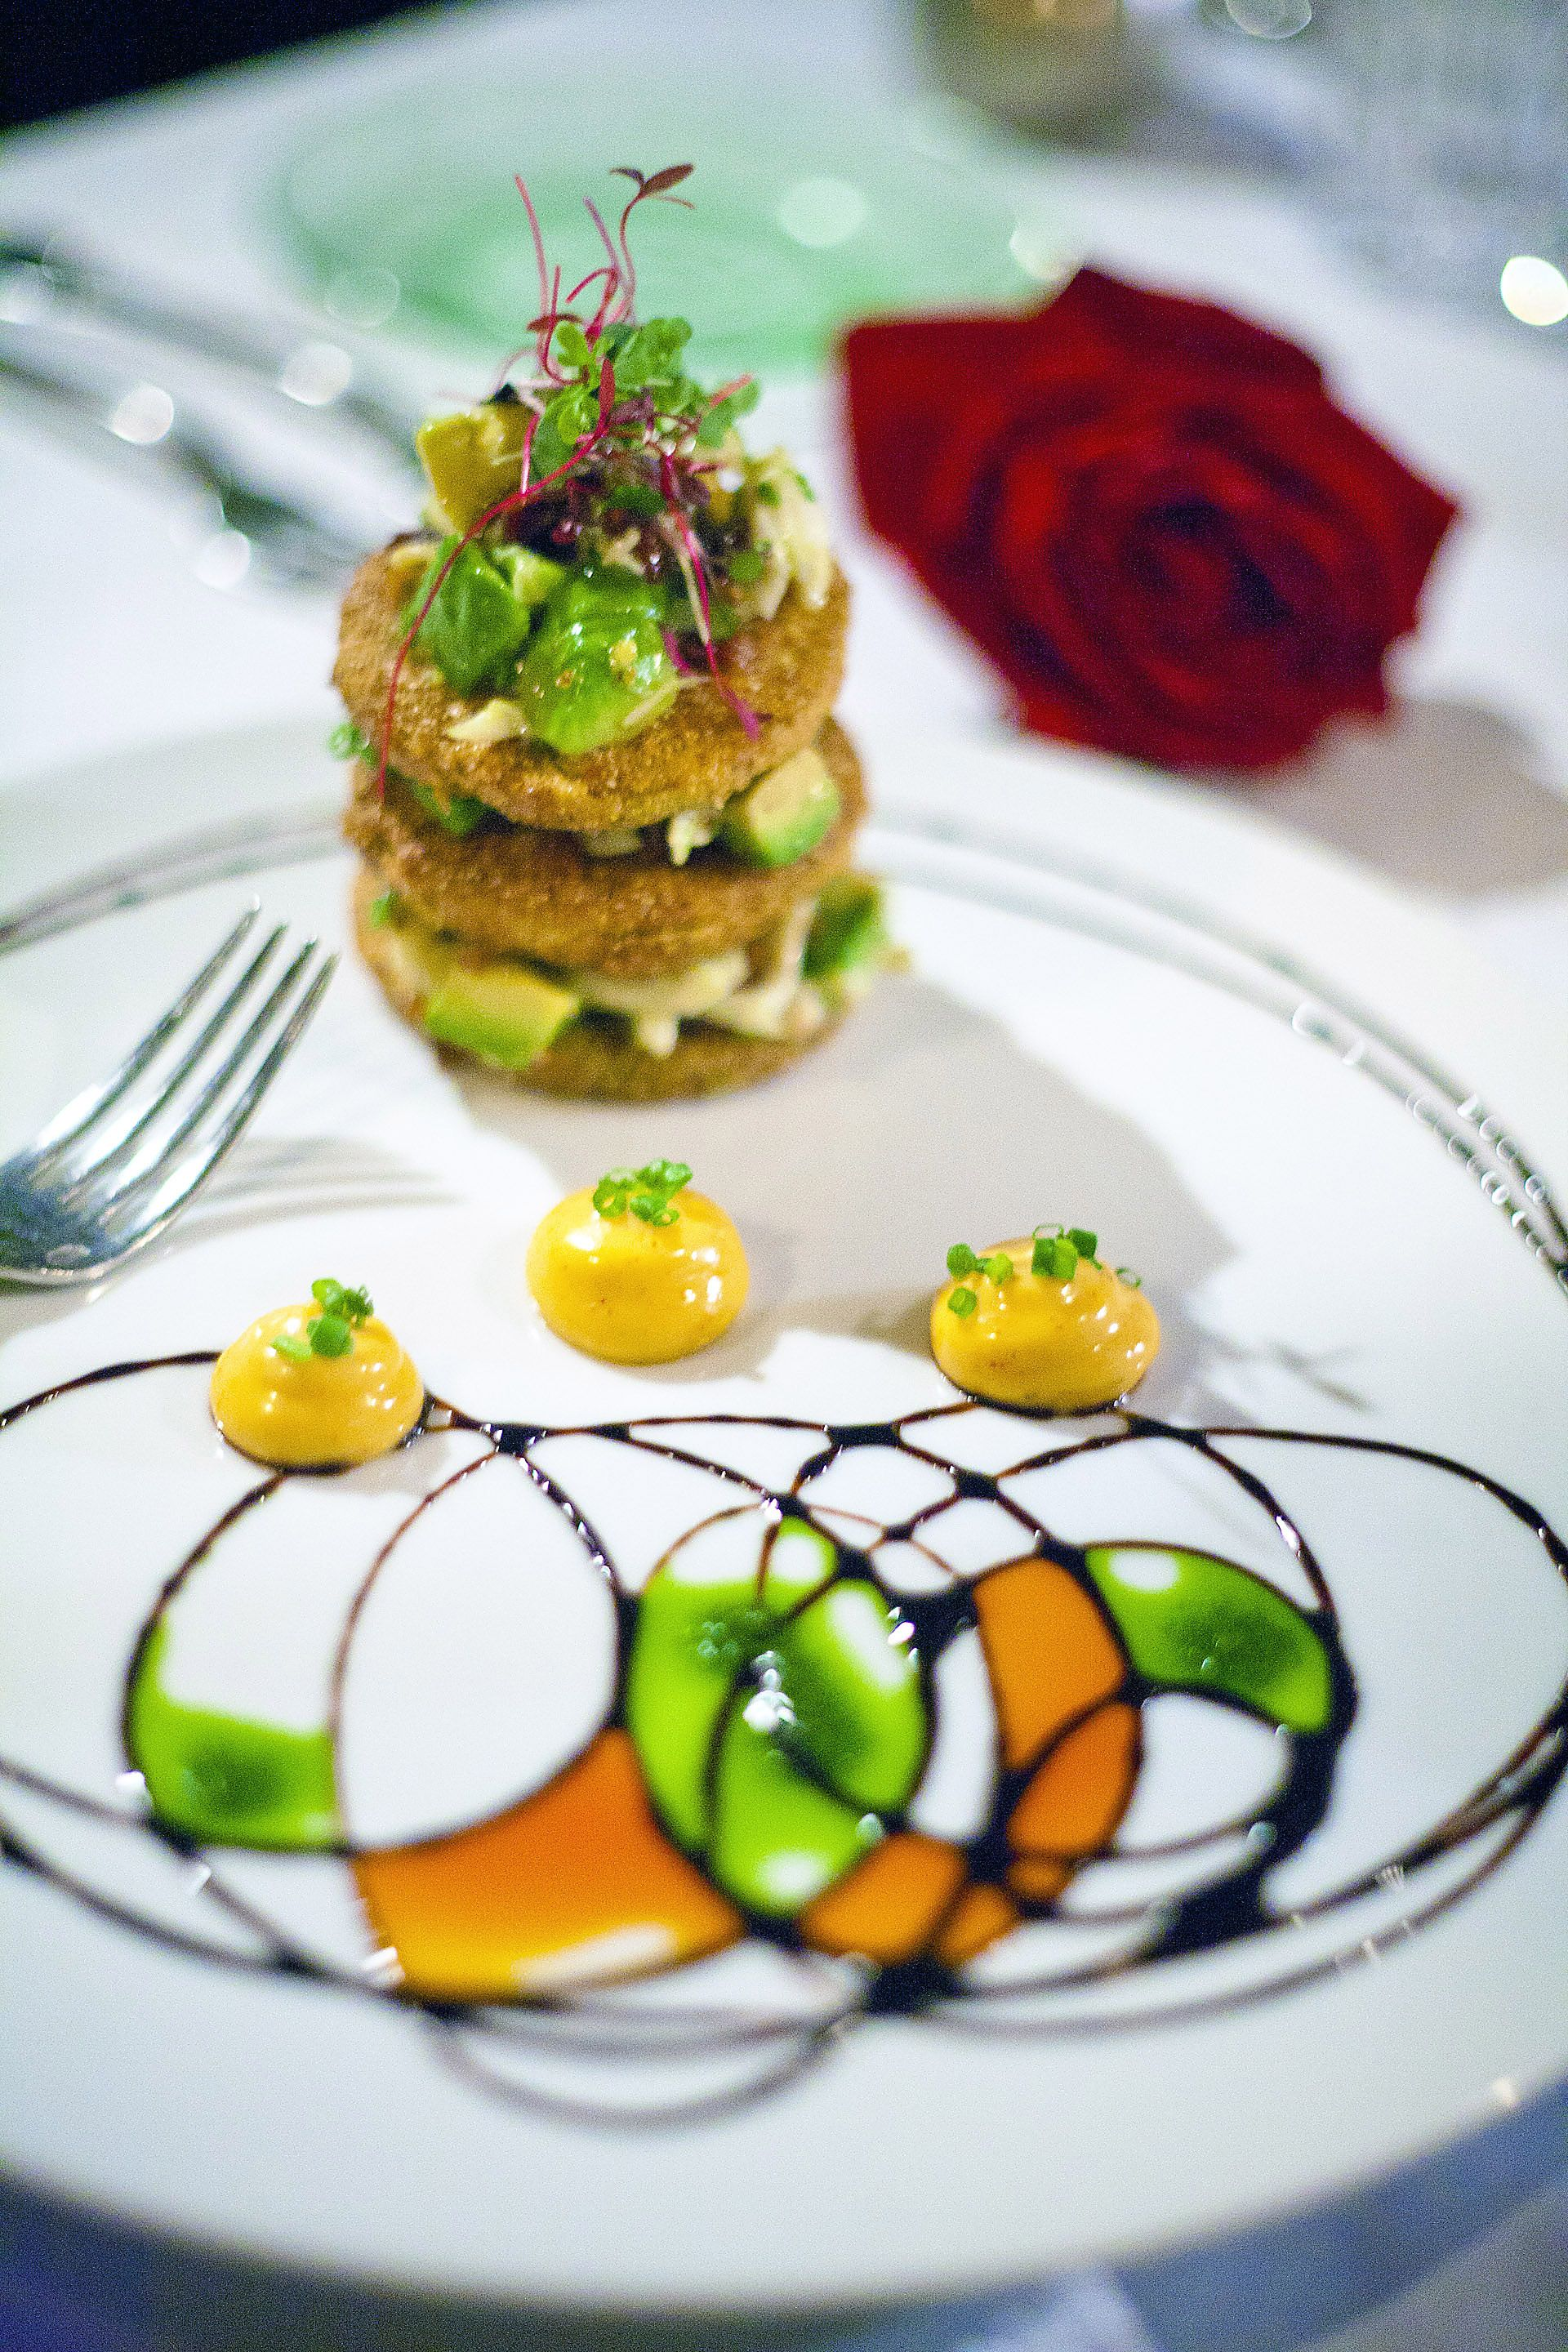 Fine dining how was the presentation pinterest fine for Fine dining food